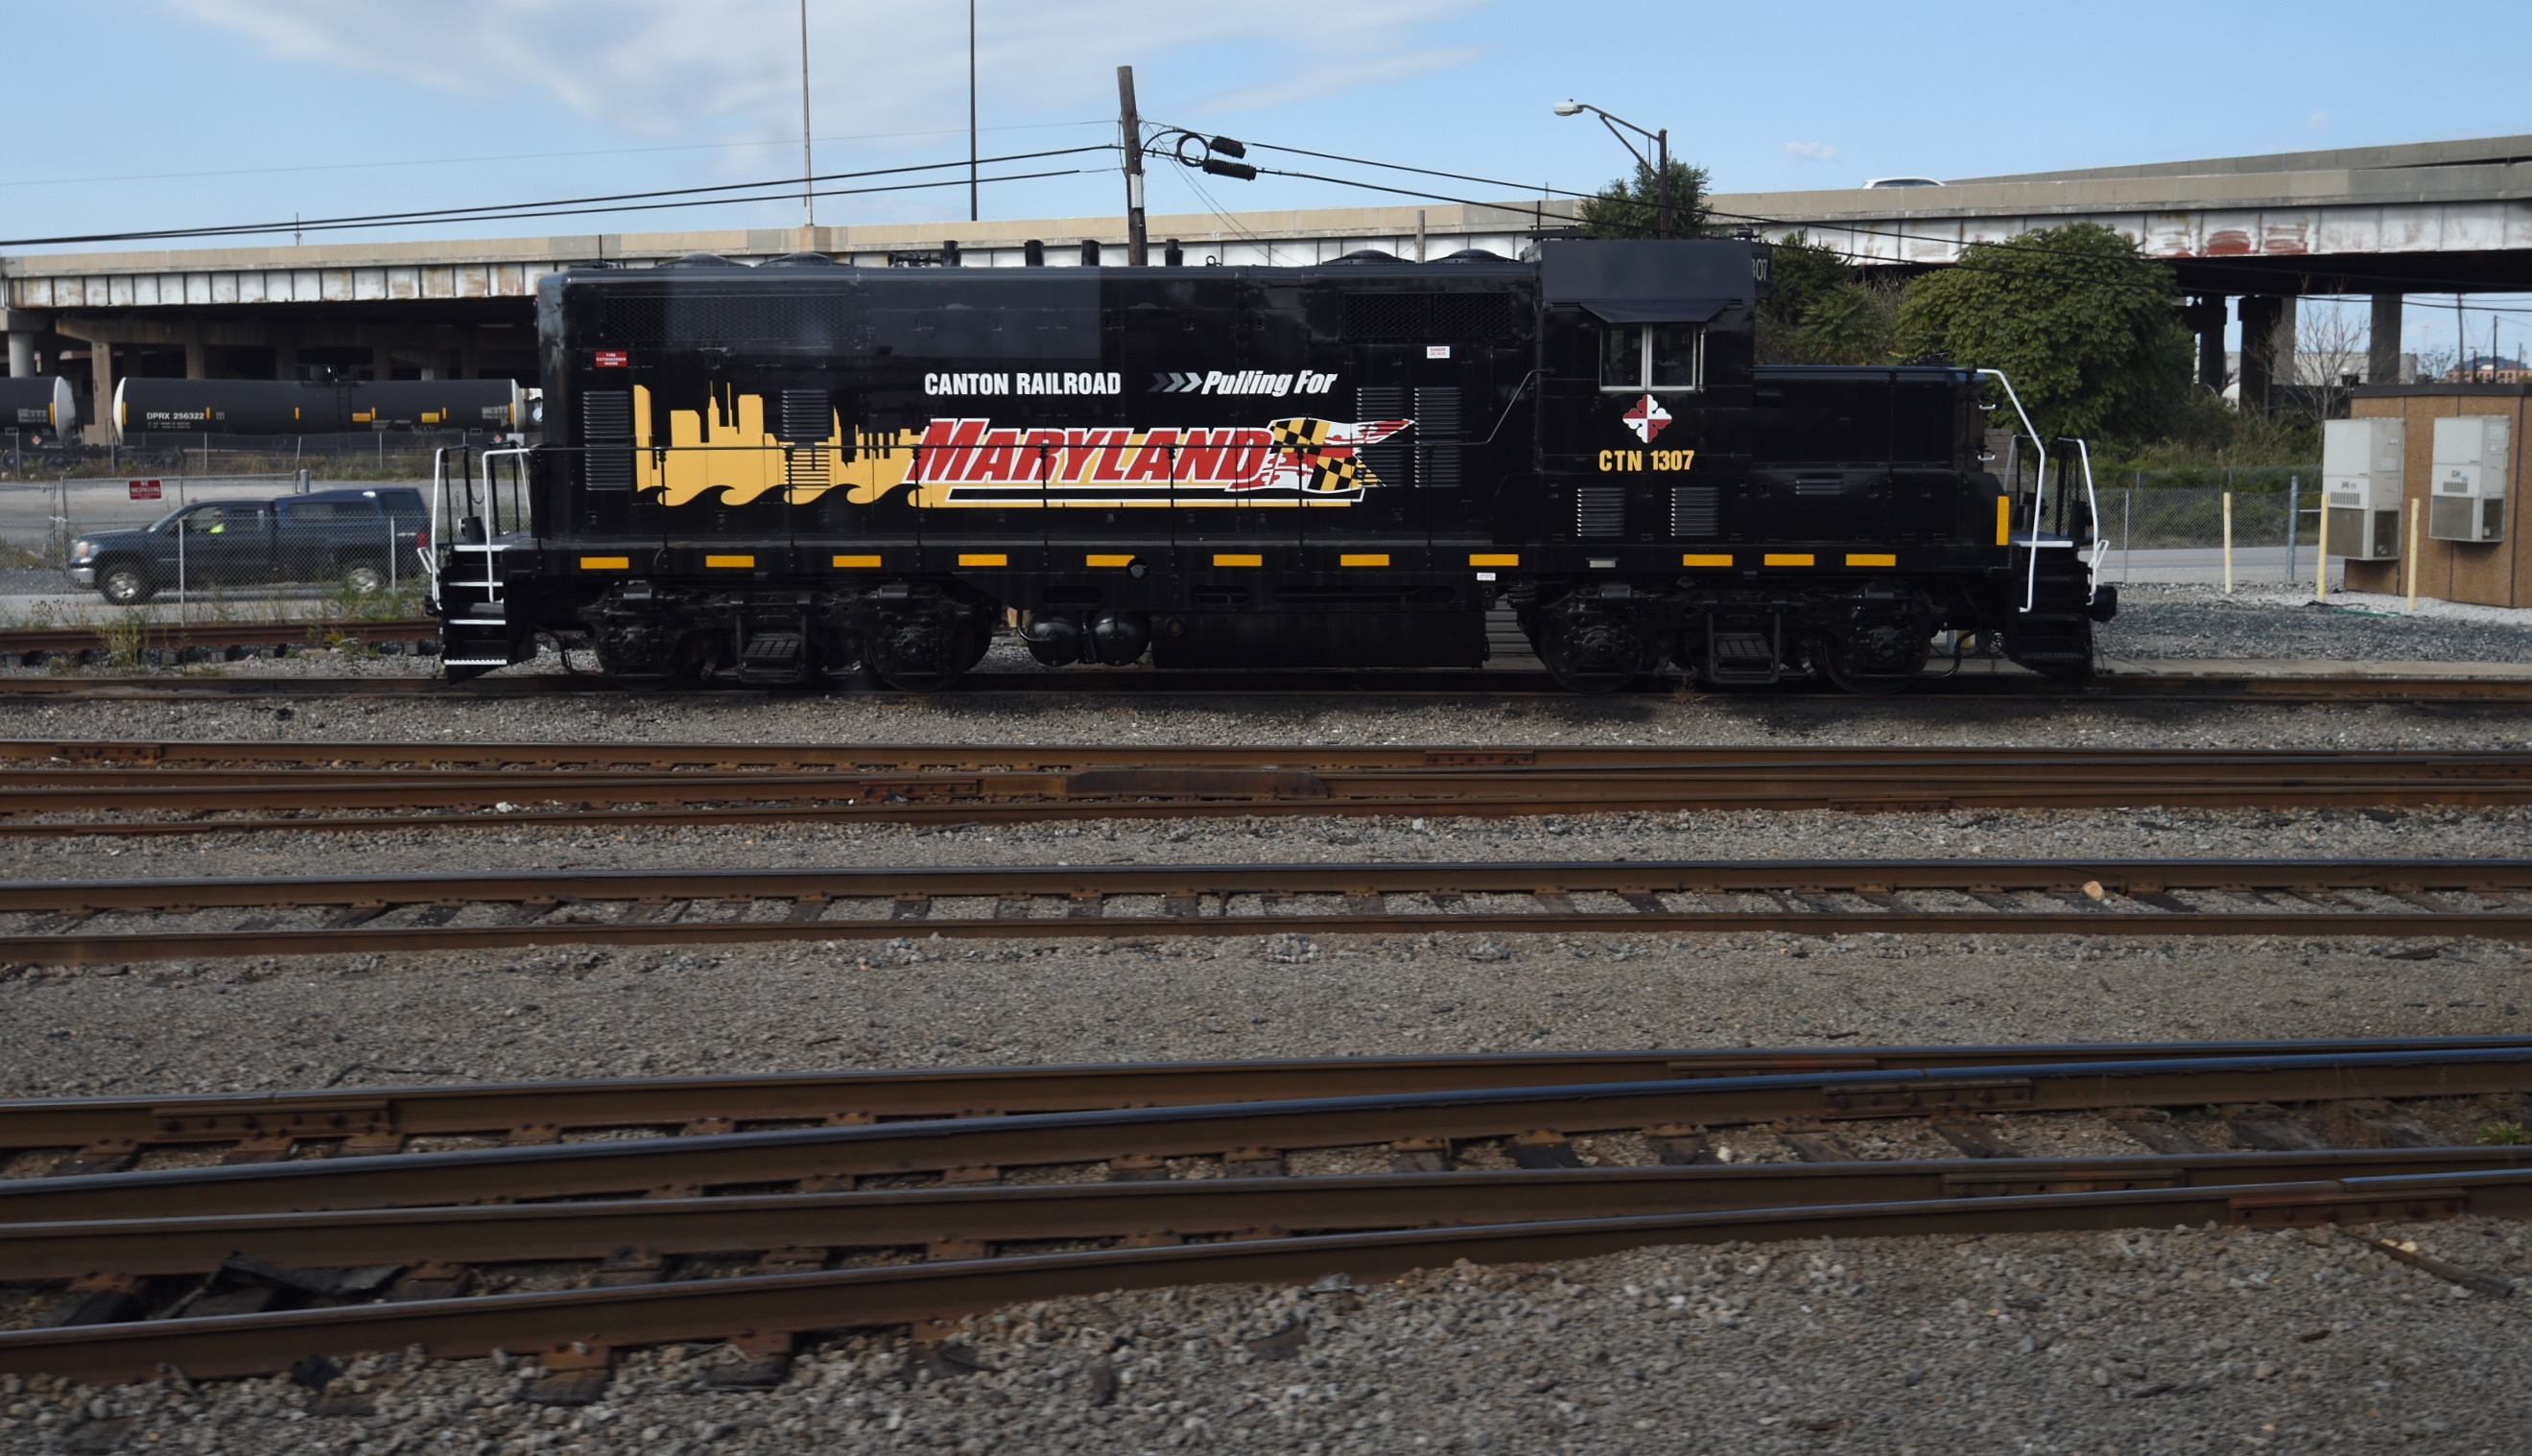 File:Canton Railroad locomotive 1307, October 2016.jpg